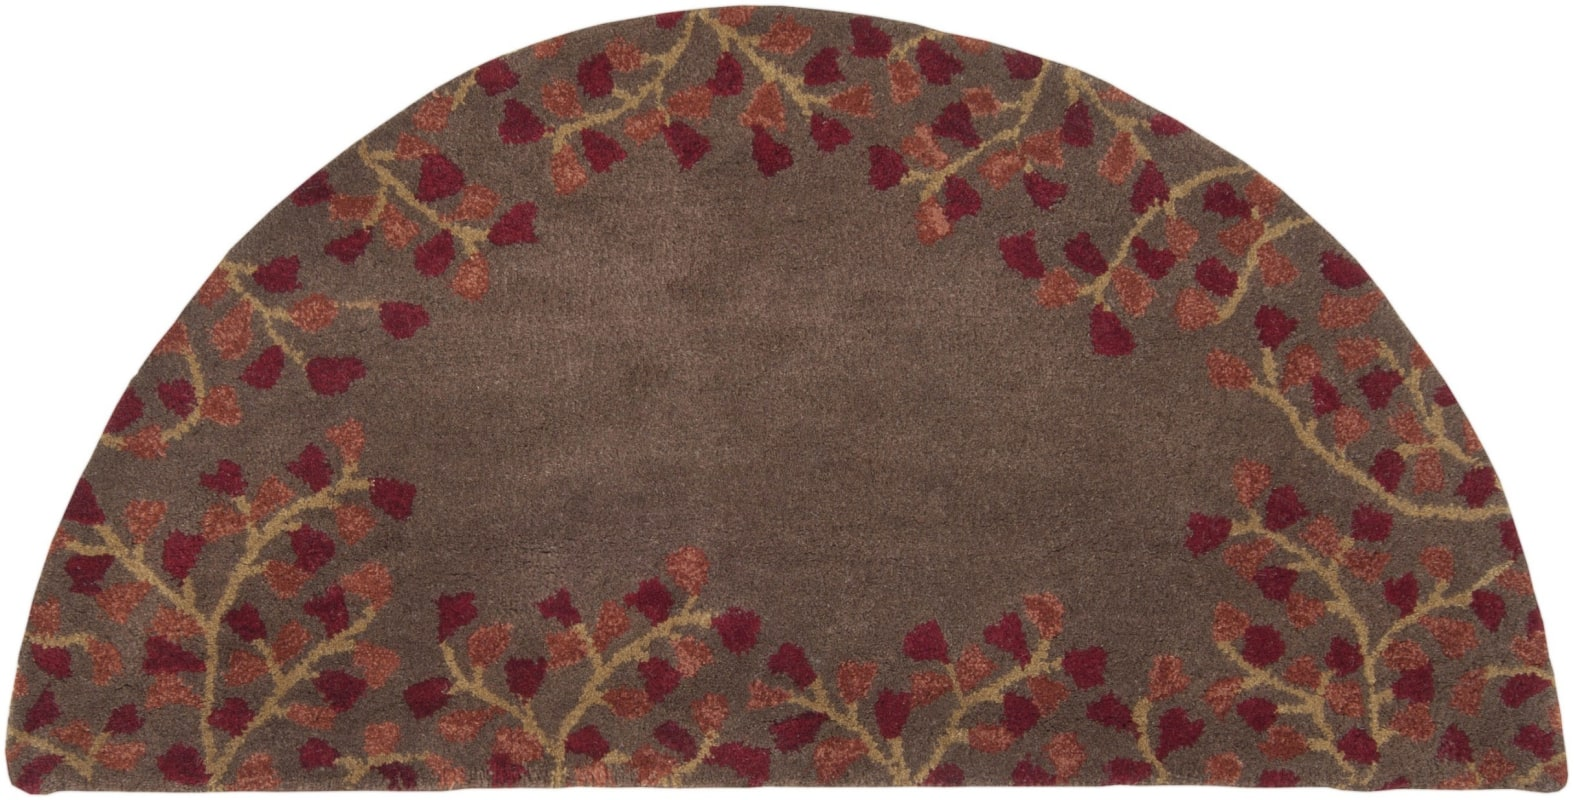 Surya ATH-5003 Athena Hand Tufted Wool Rug Red 6 x 9 Home Decor Rugs